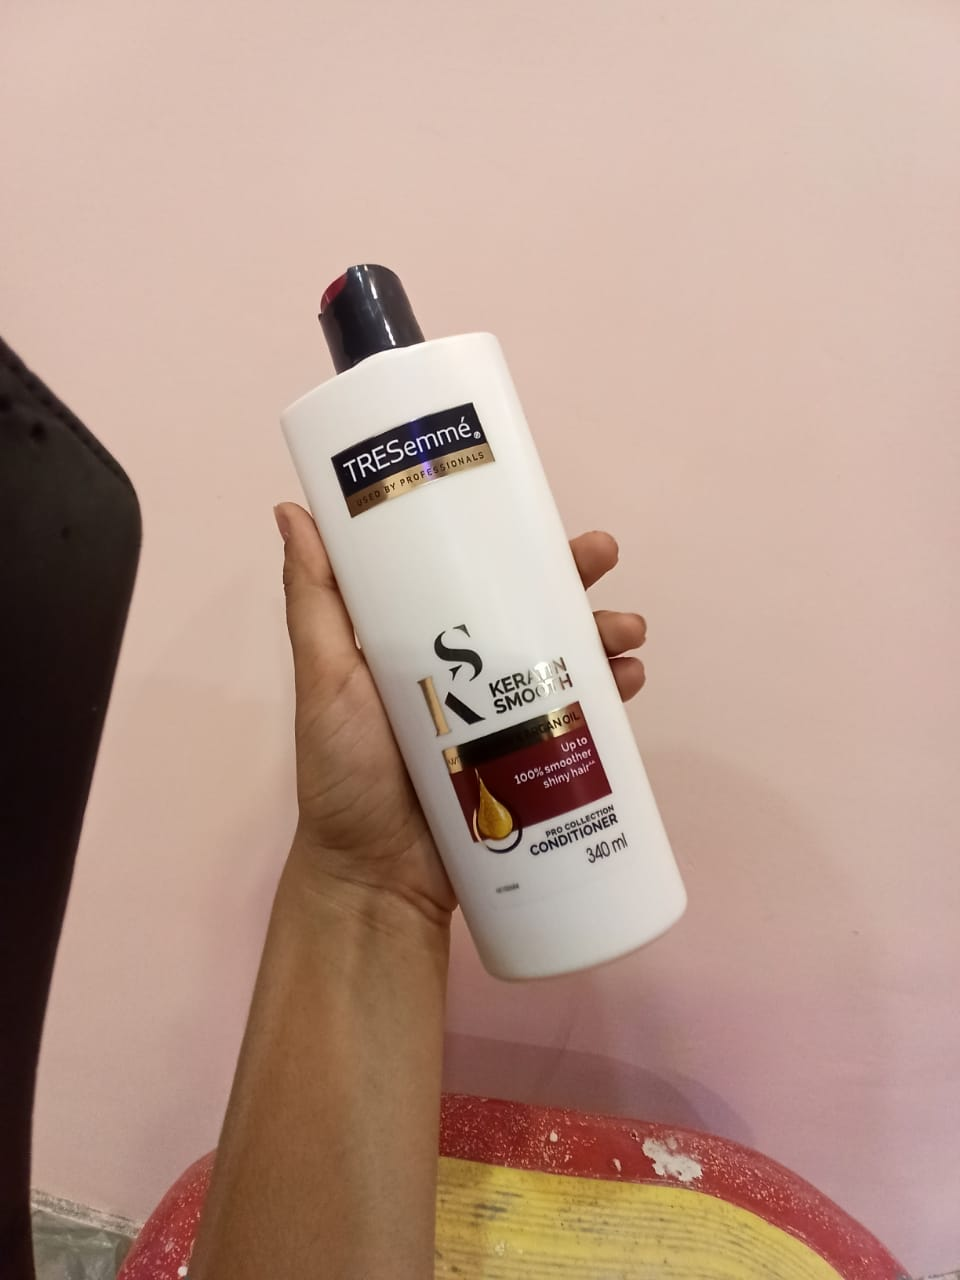 Tresemme Pro Protect Sulphate Free Conditioner pic 1-Awesome conditioner I have ever used.-By aadya_